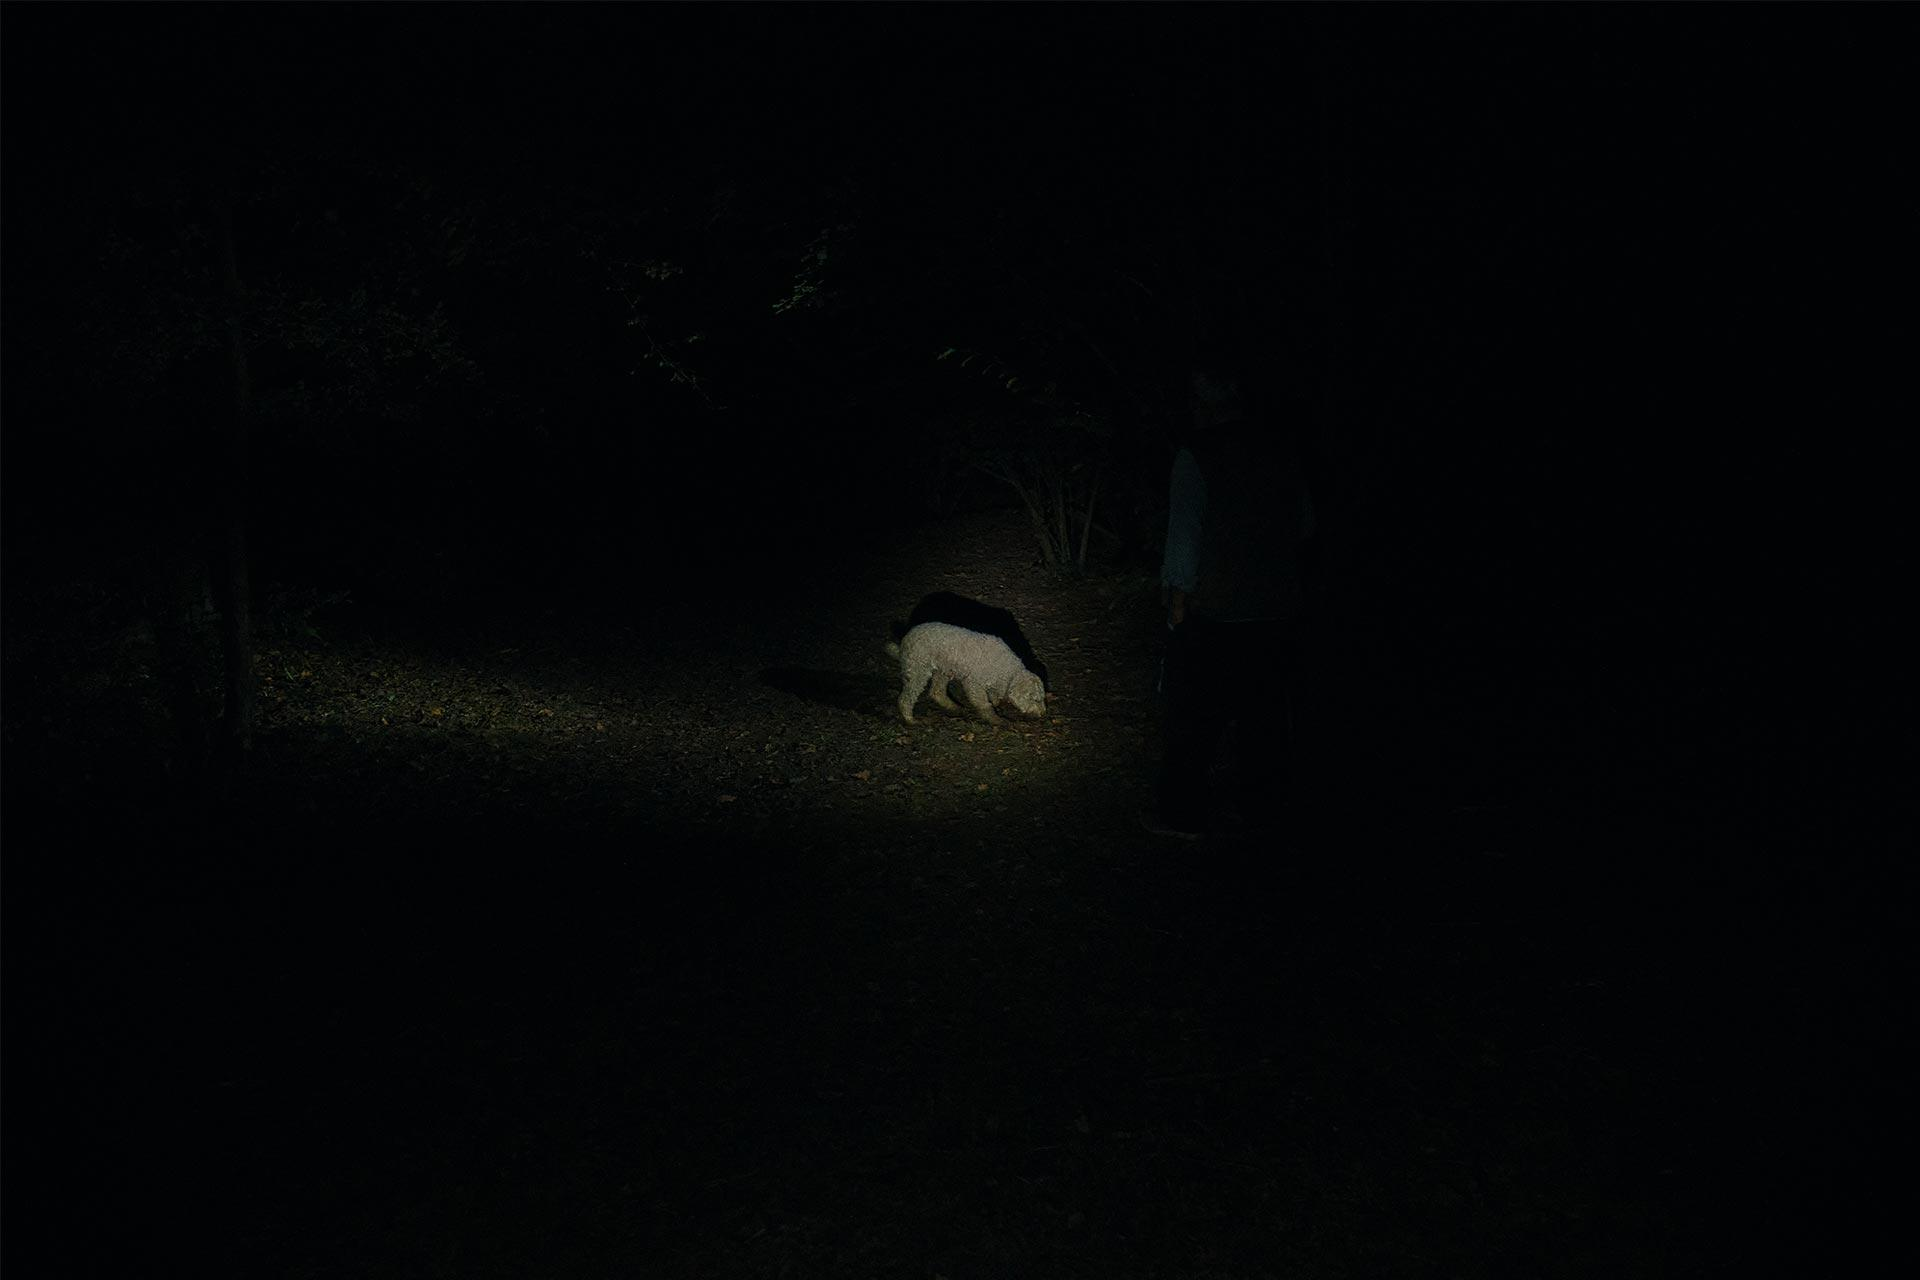 Dog searching for truffle in the dark